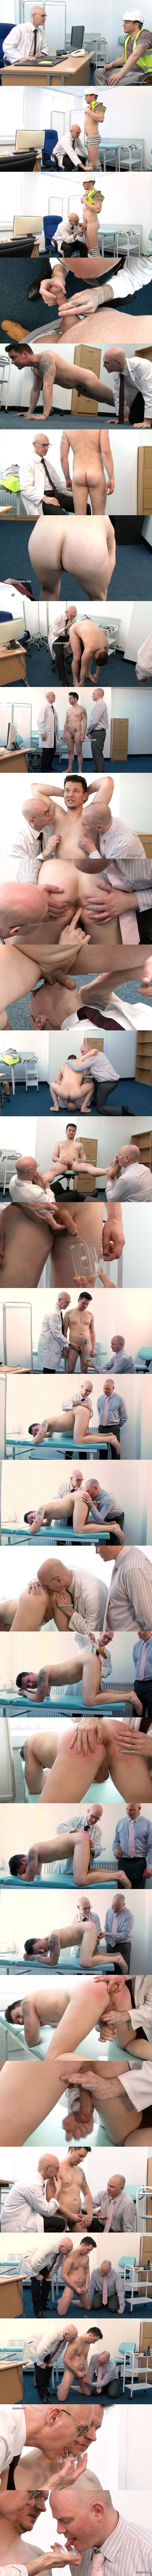 Muscular straight construction worker Oleg (aka Yury) gets dominated, humiliated, spanked, worshiped and wanked by perverted doctors Adrian and Dave in The Private Clinic at Cmnm 01